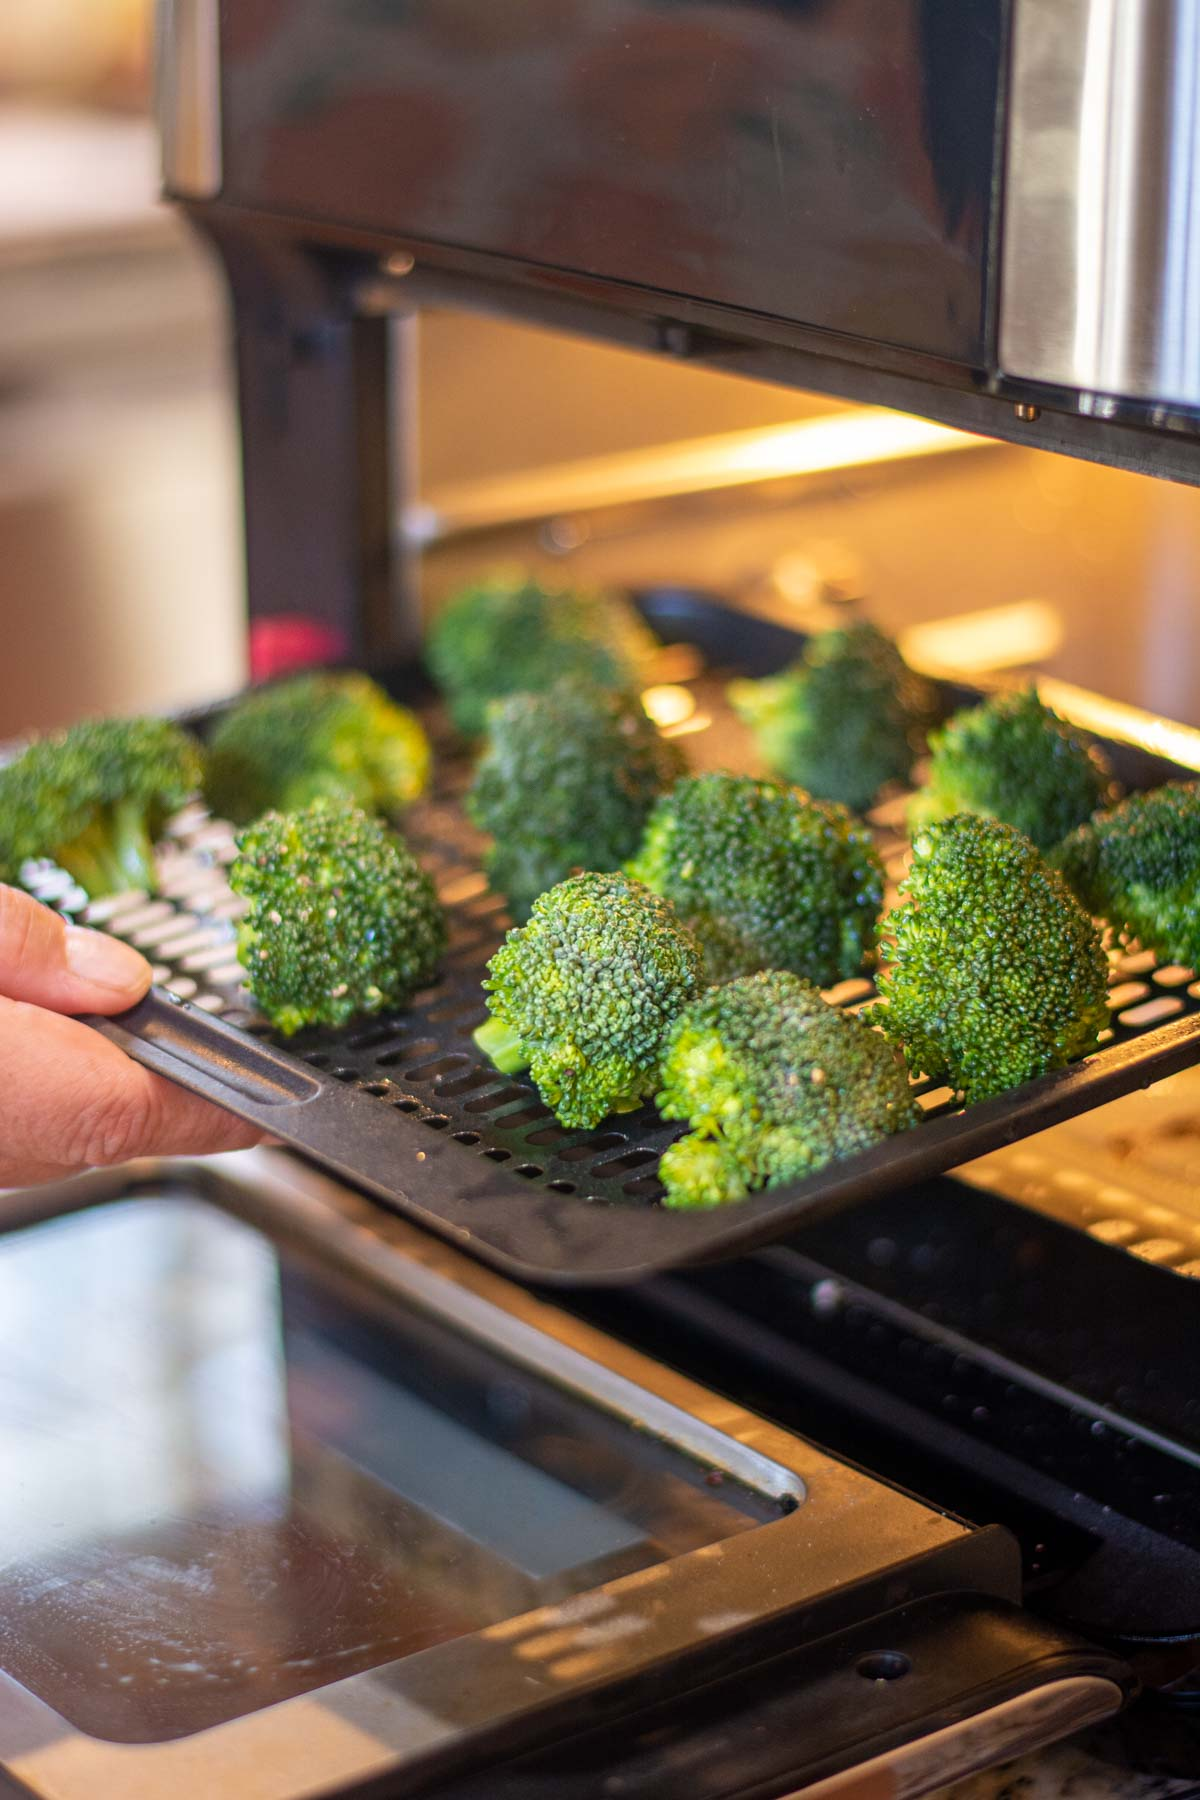 adding the broccoli to the air fryer.